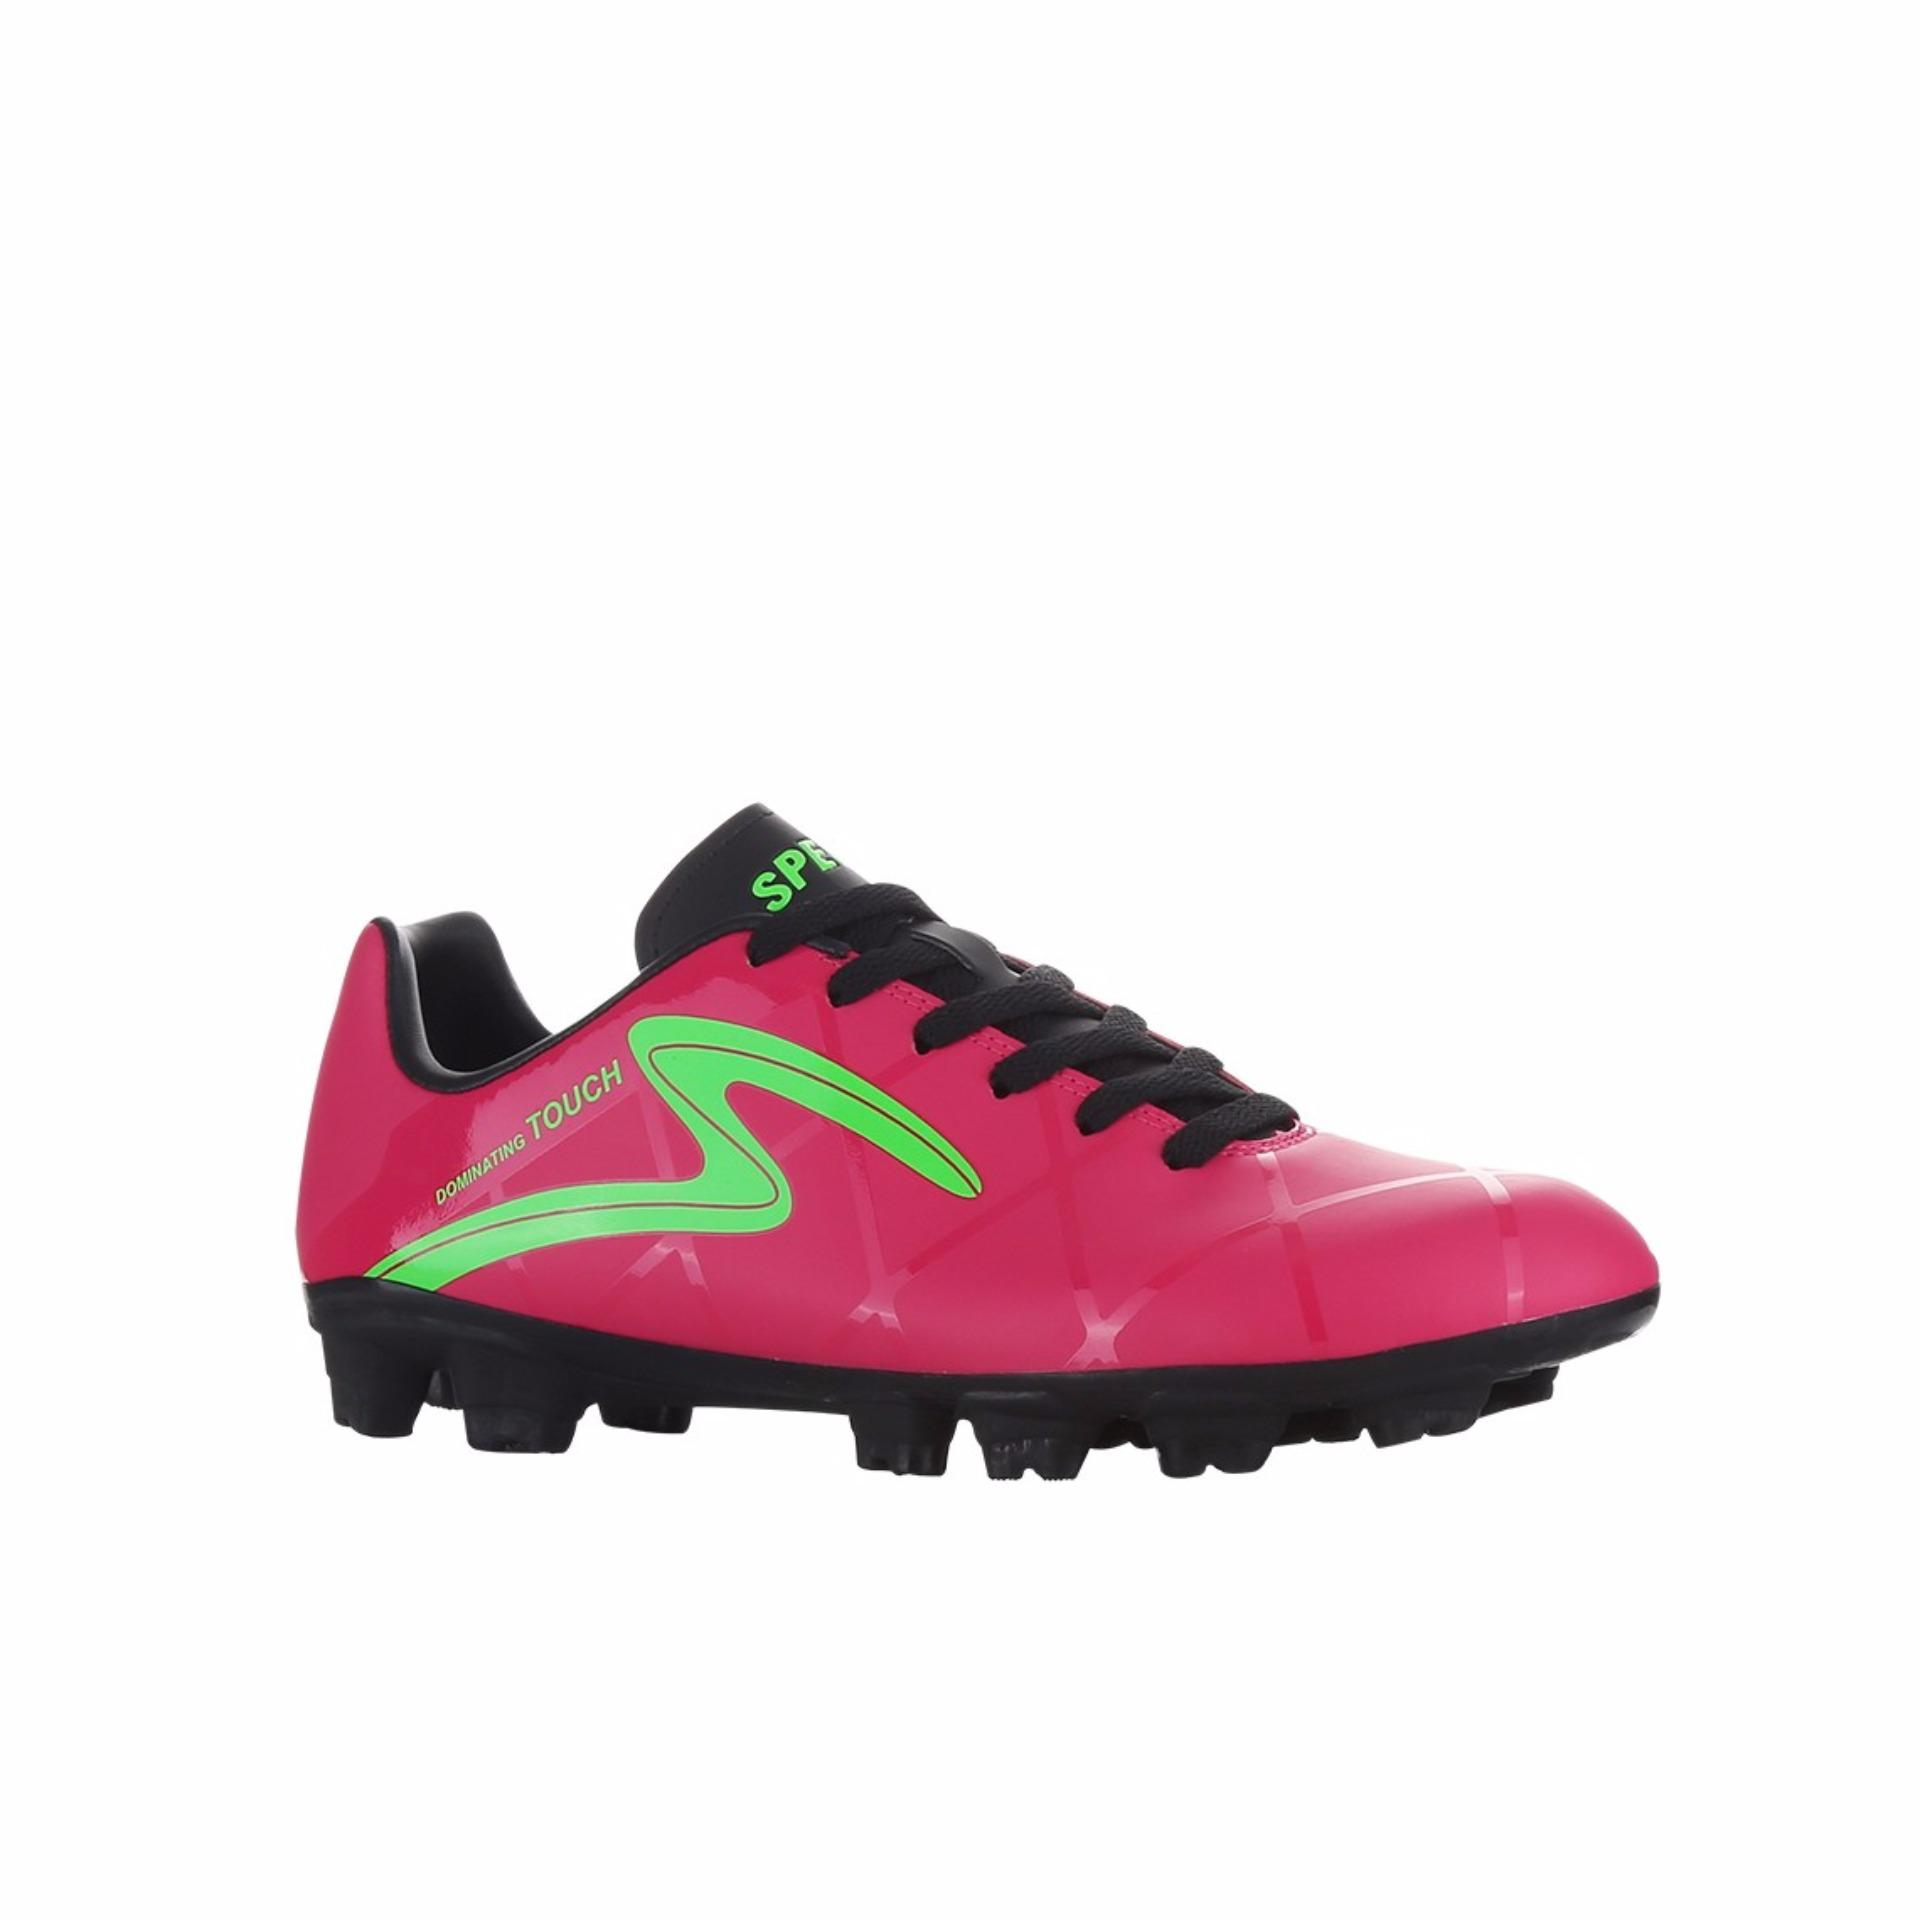 SPECS DIABLO FG - DARK RED/OPAL GREEN/BLACK